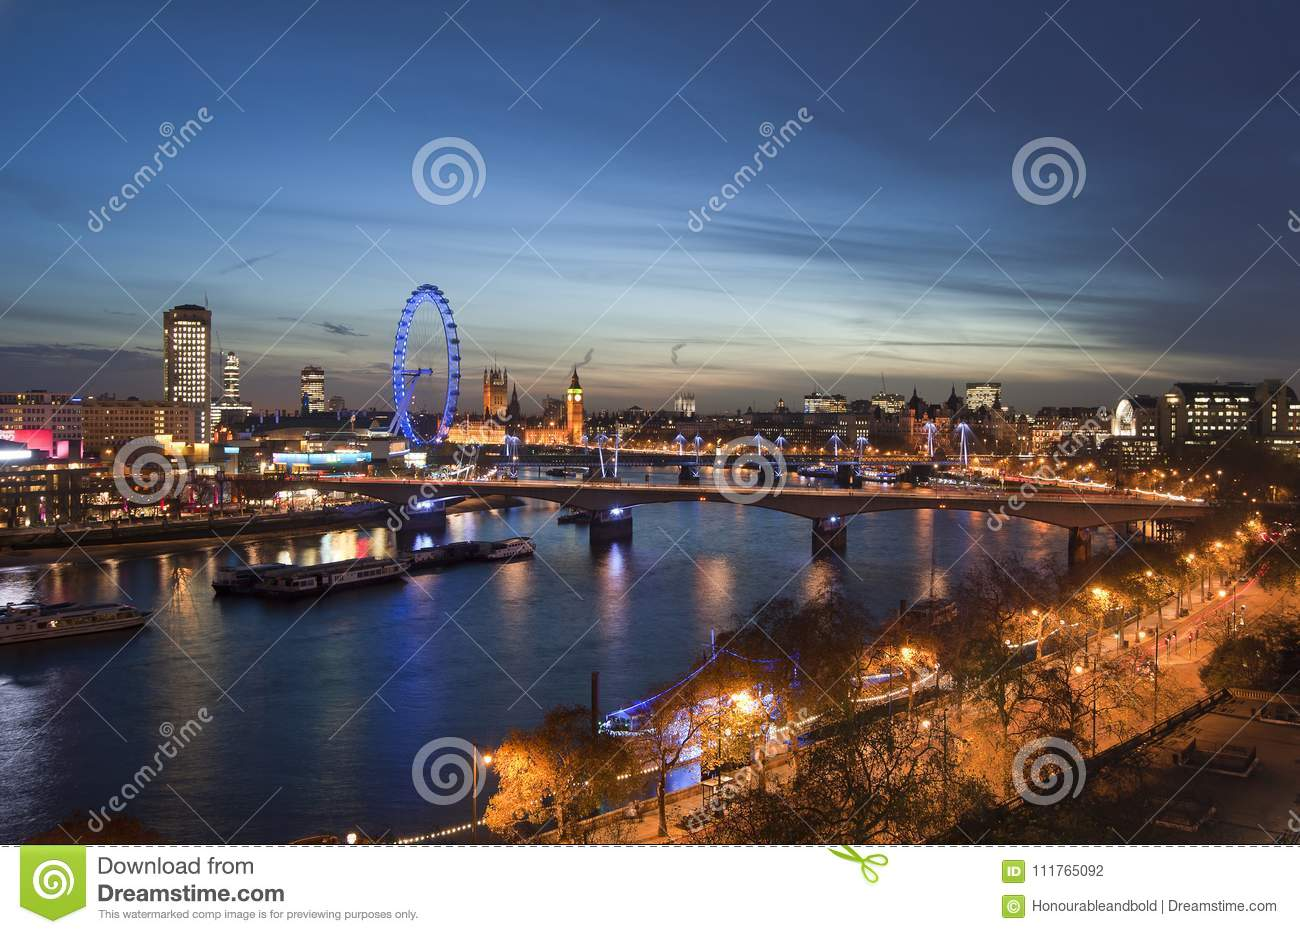 Beautiful landscape image of the London skyline at night looking